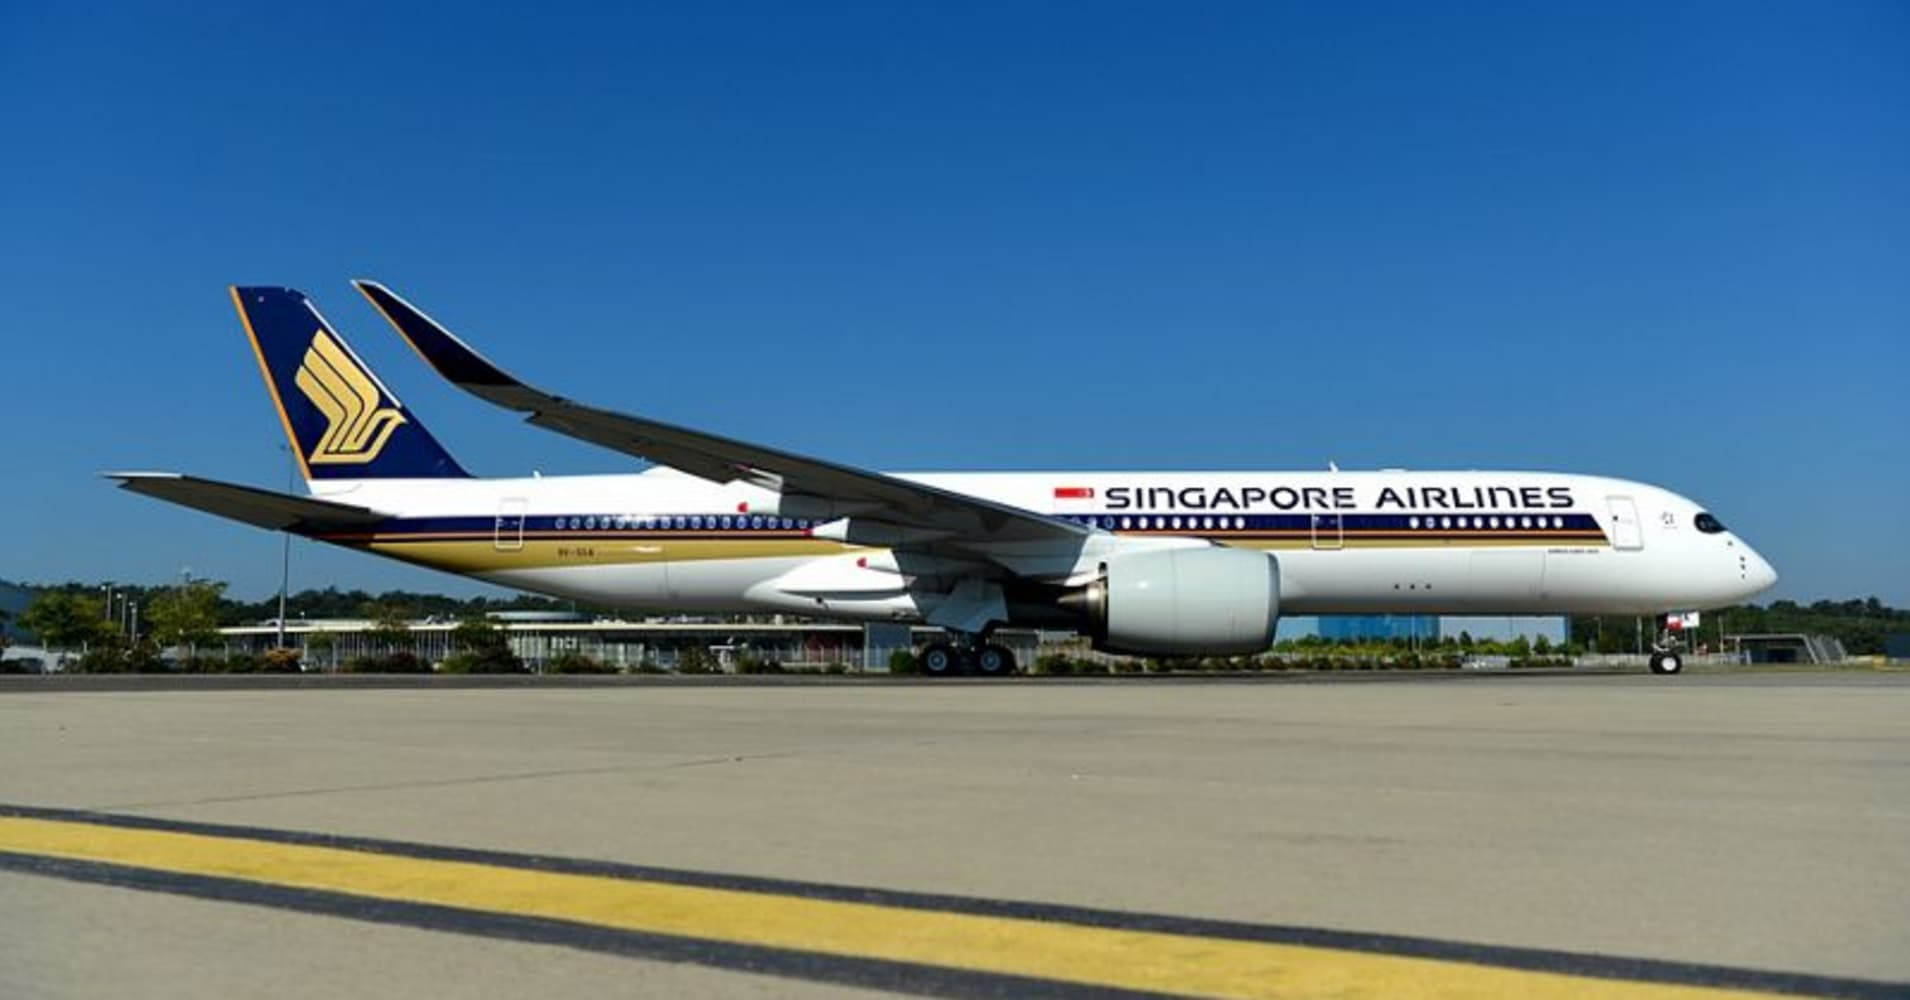 World\'s longest non-stop flight from Singapore to New York has landed